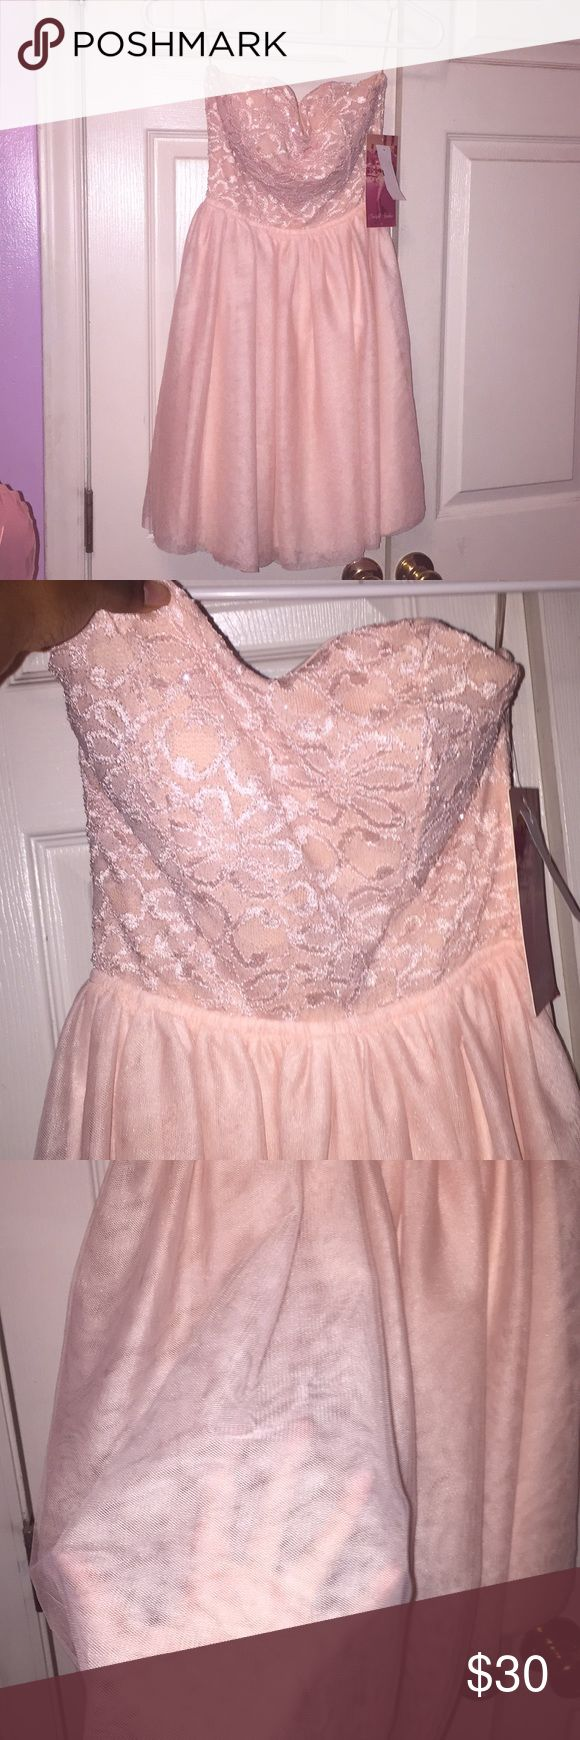 Light pink cocktail dress 💕👠 Never worn pink dress has a open bow on the back with an open back. It also has glitter with flowers on the top that are laced in. It's gorgeous:) Emerald Sundae Dresses Strapless